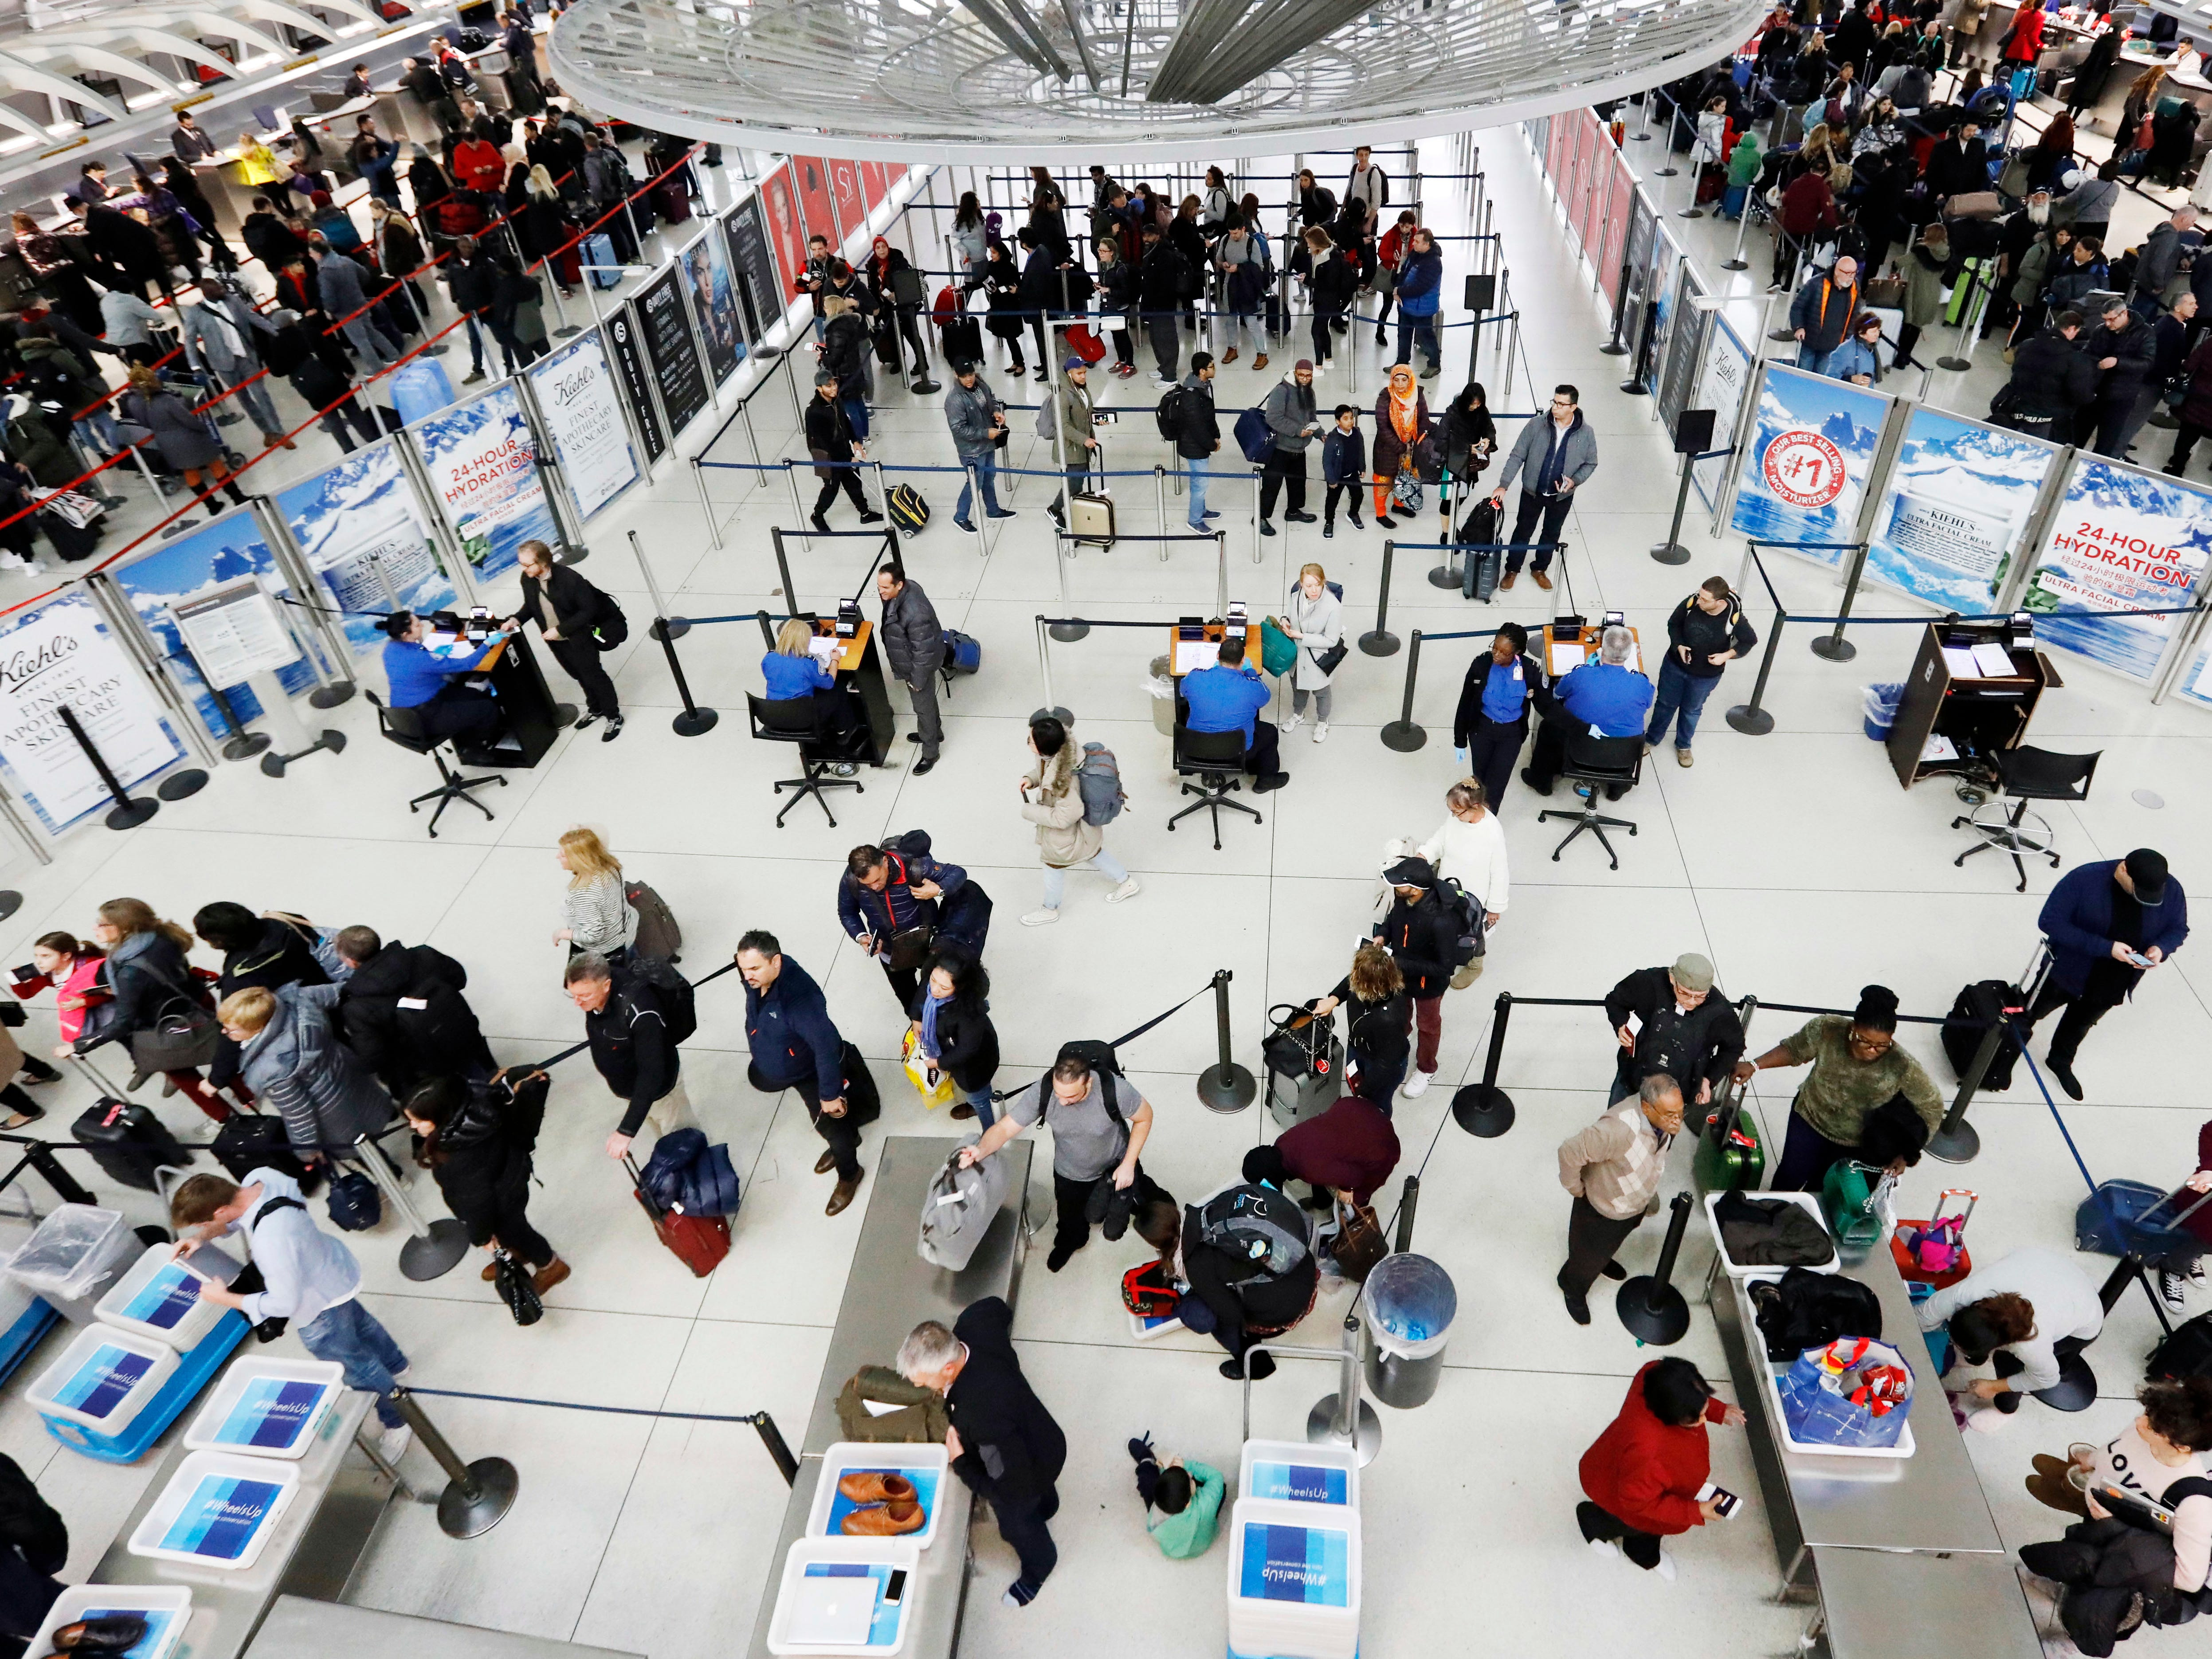 Travelers line up for a security checkpoint at John F. Kennedy International Airport, Wednesday, Nov. 21, 2018, in New York. The airline industry trade group Airlines for America expects that Wednesday will be the second busiest day of the holiday period behind only Sunday, when many travelers will be returning home after Thanksgiving.